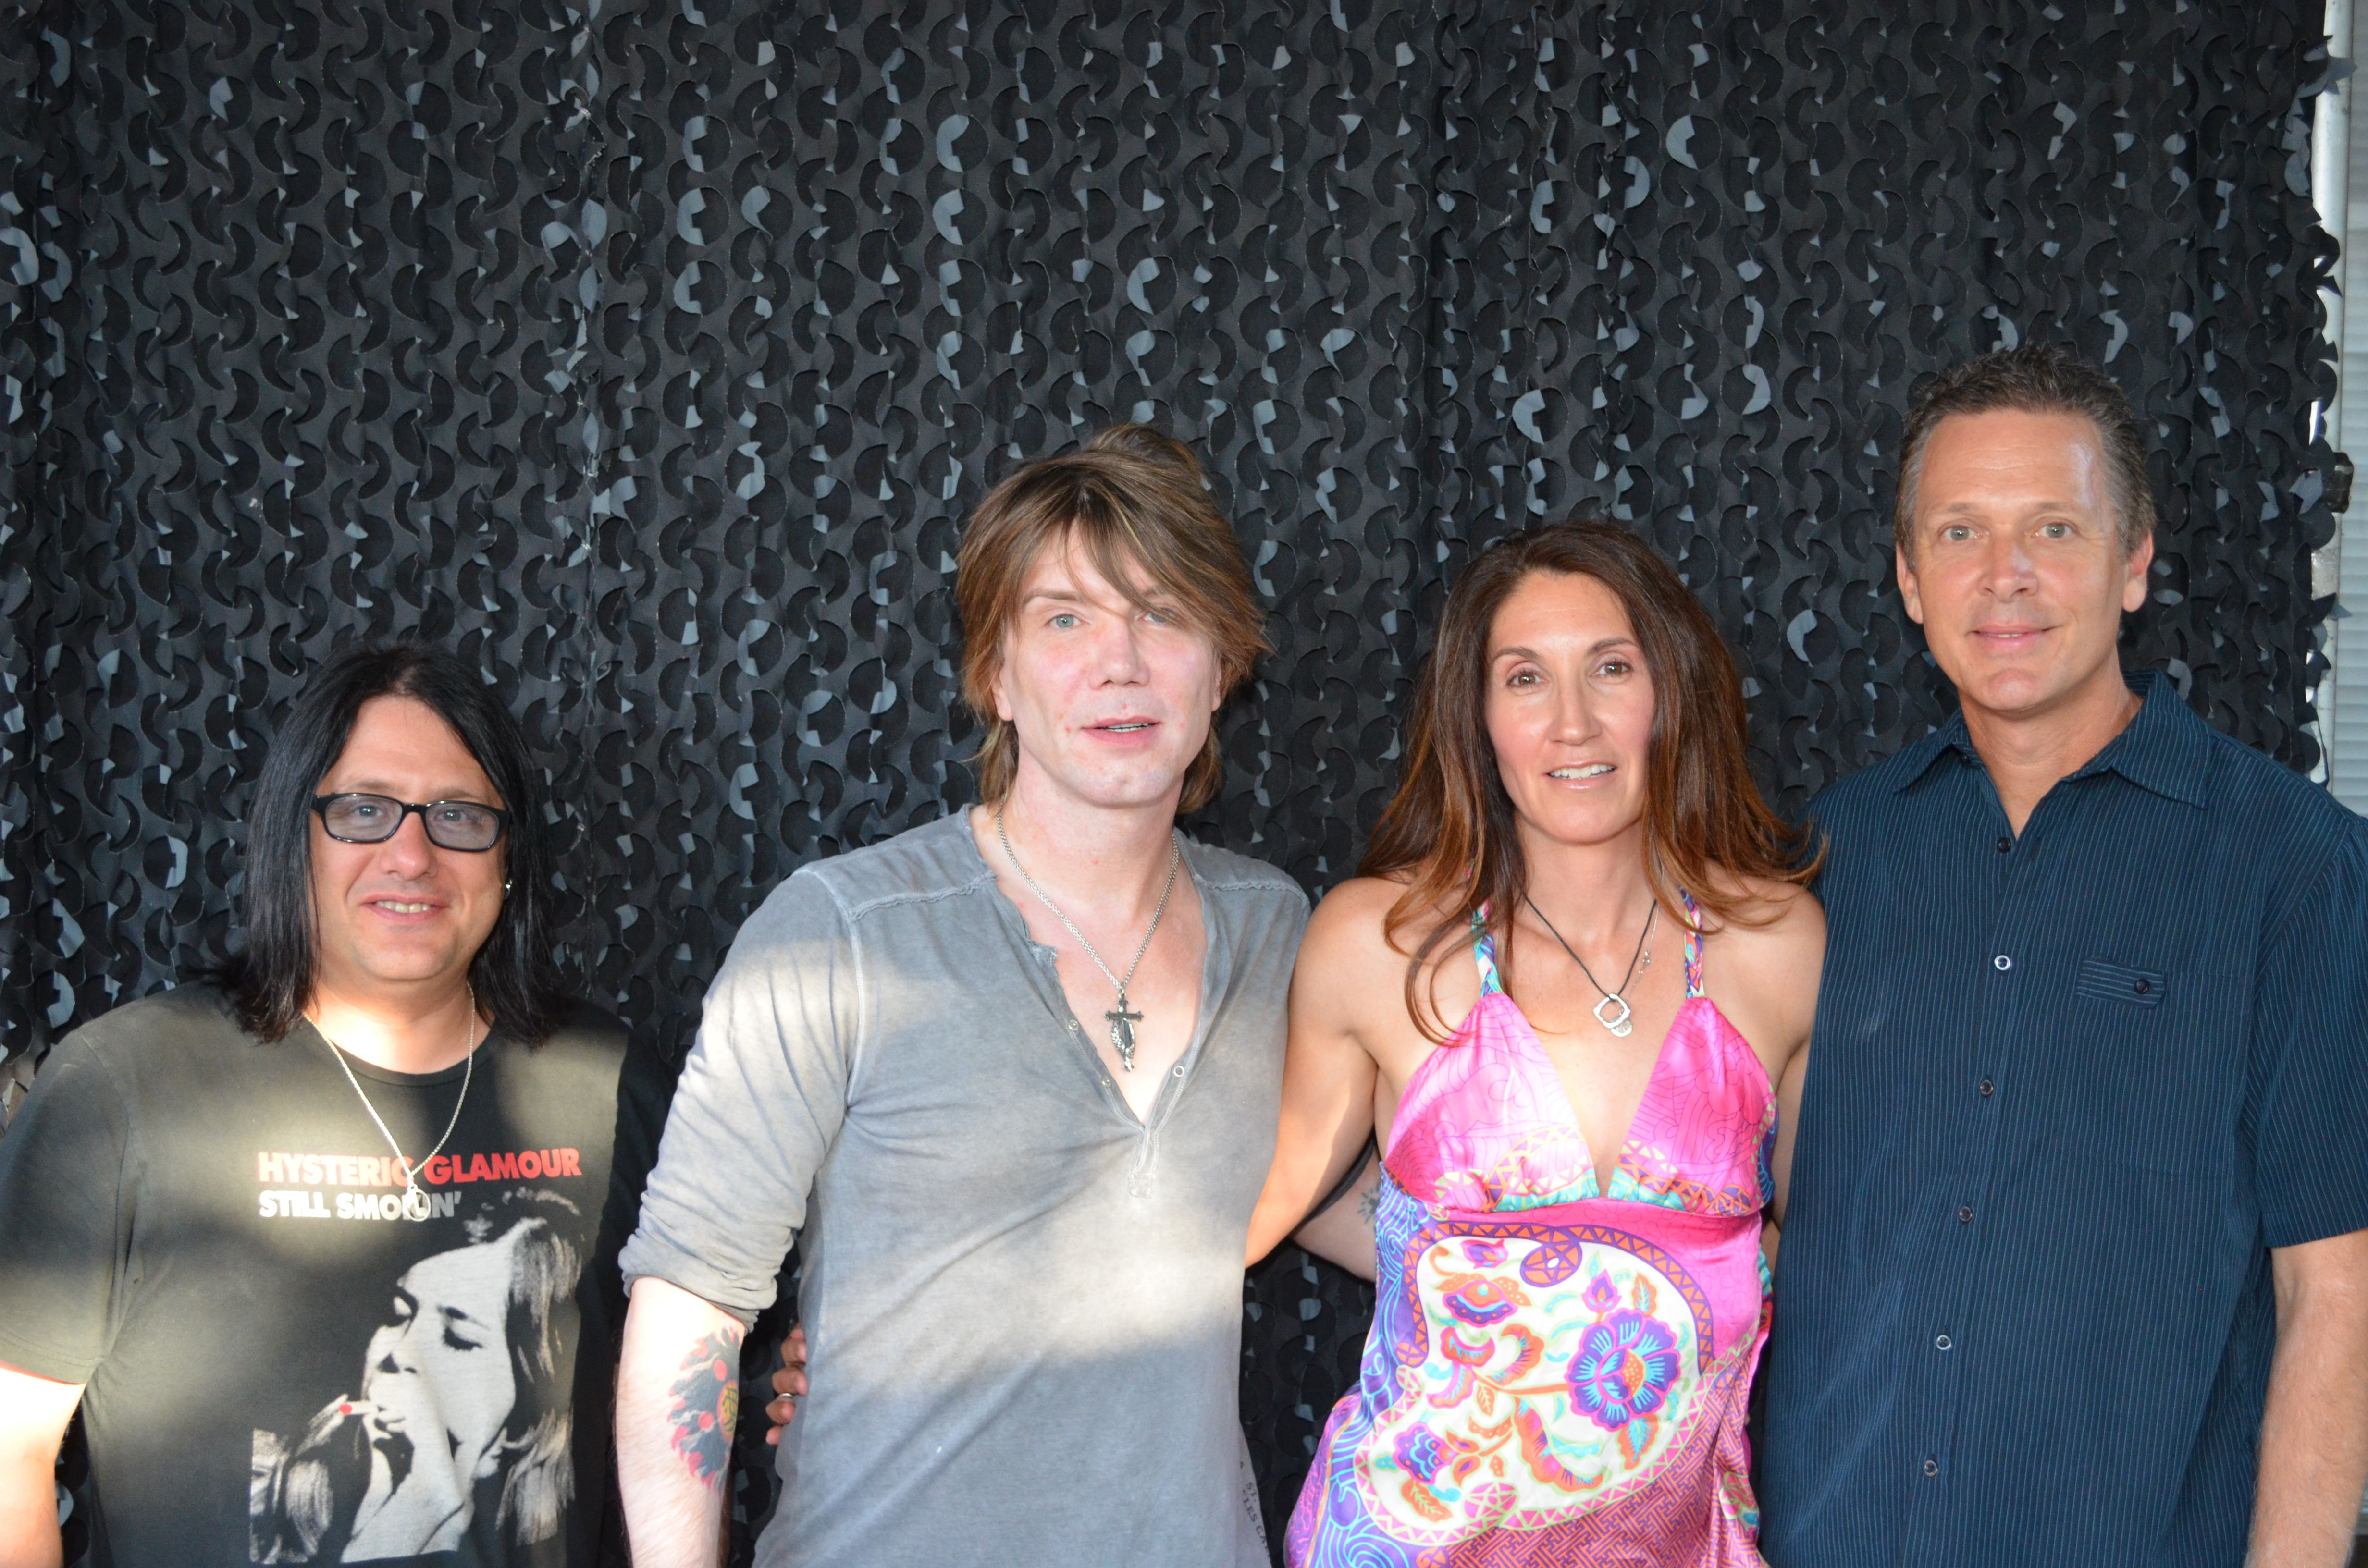 The Goo Goo Dolls And I In Denver Quick Meet And Greet Happened So